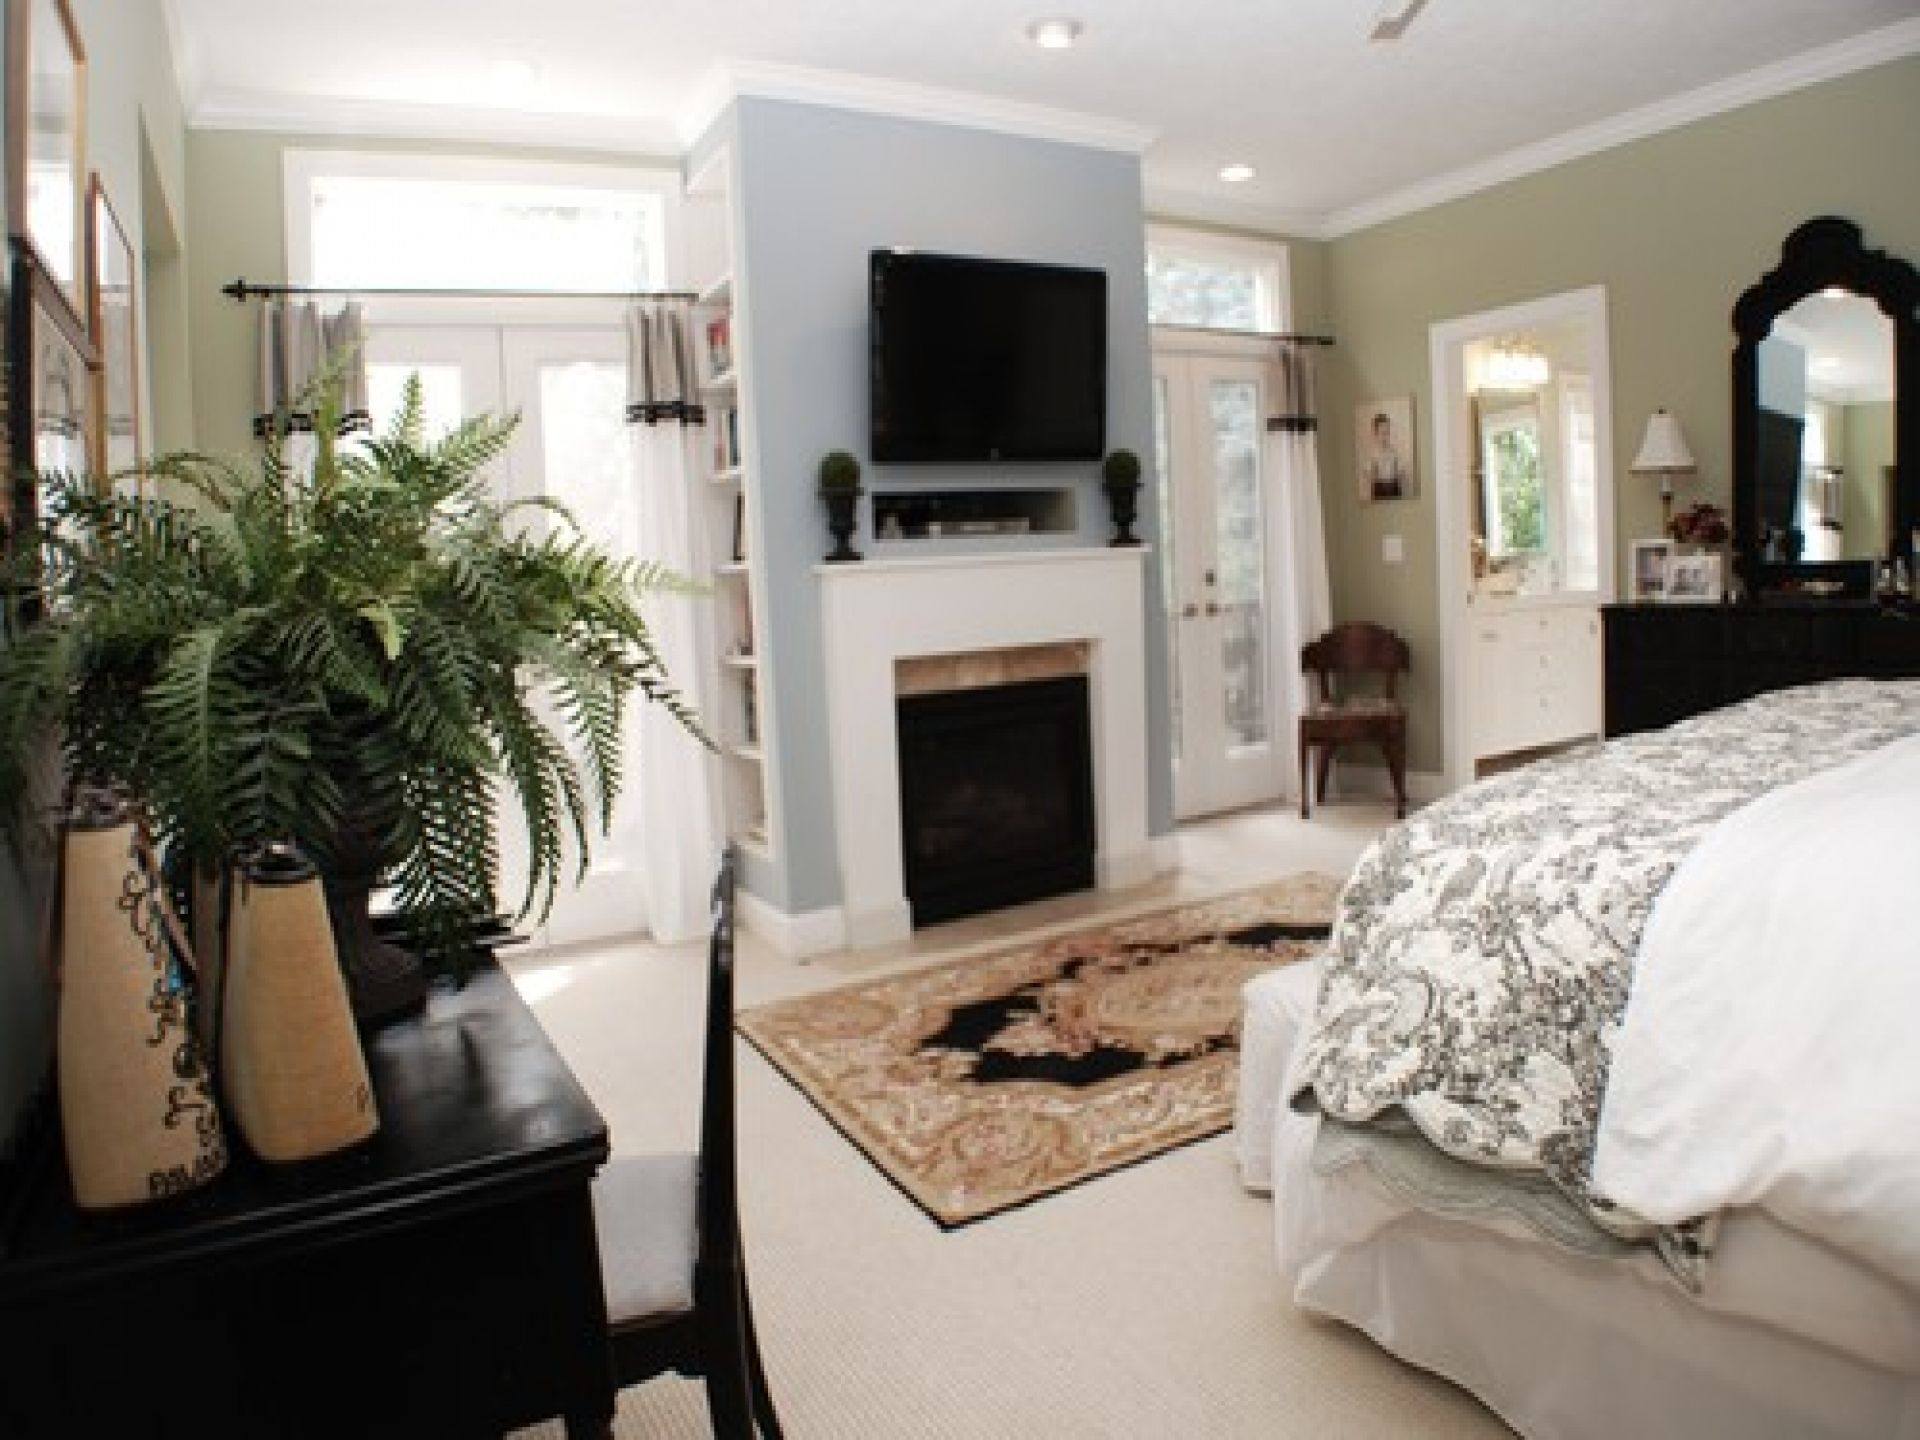 Master Bedroom With Fireplace Of Black Table Chair Entertainment